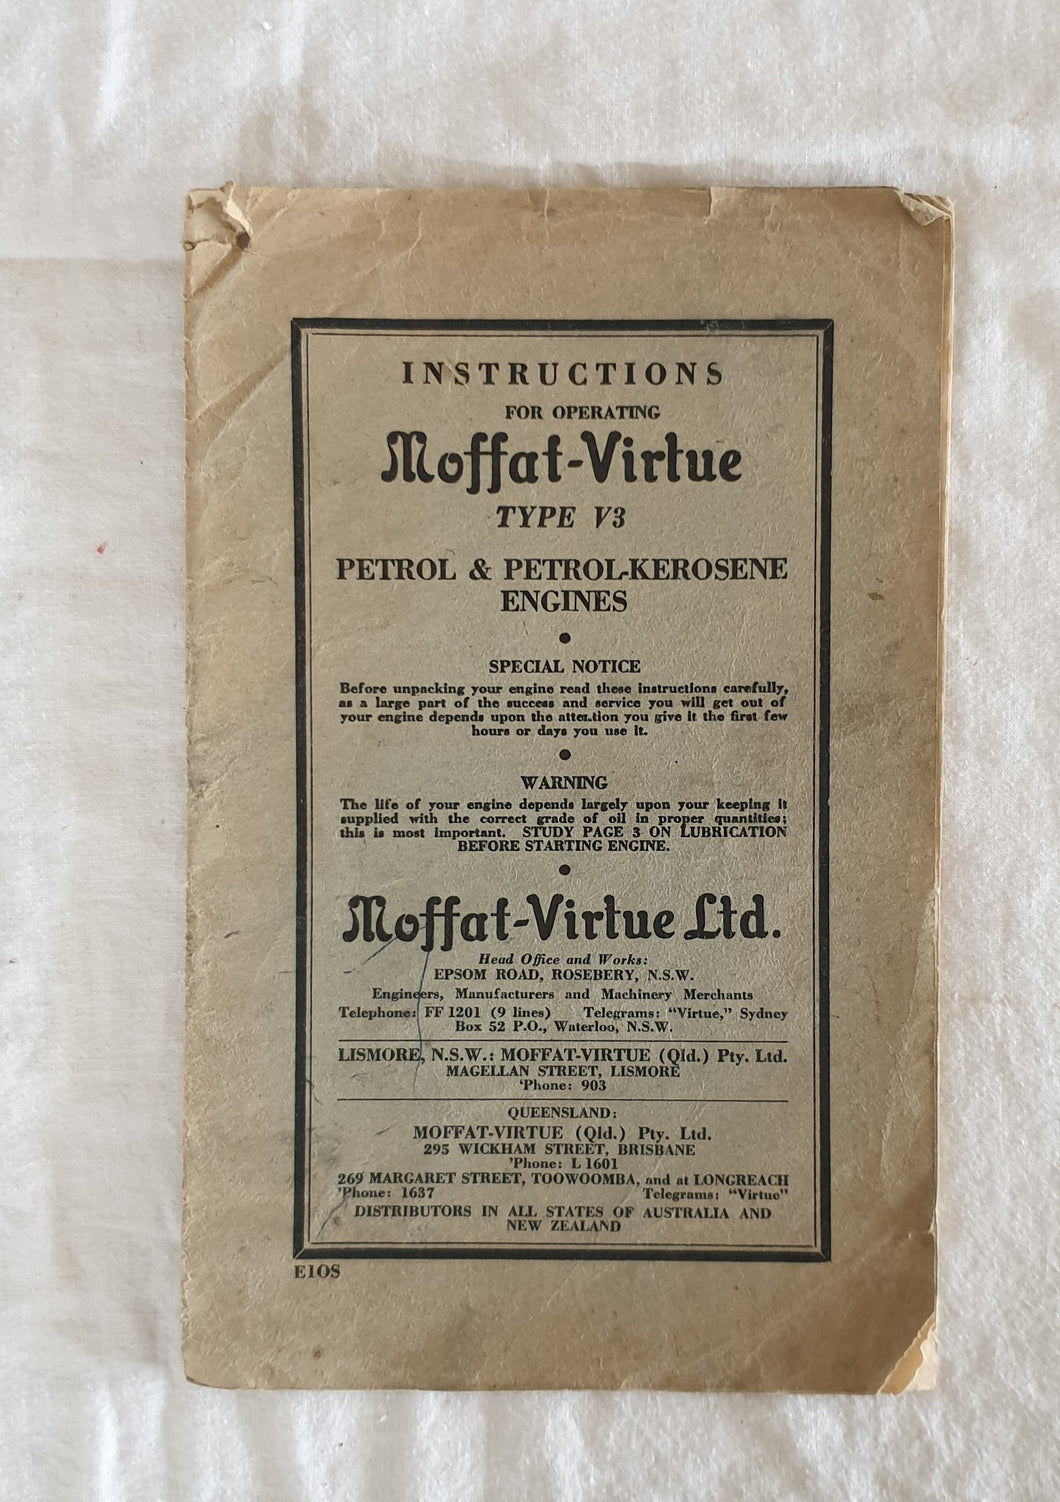 Instructions for Operating Moffat-Virtue Type V3 Petrol & Petrol-kerosene Engines